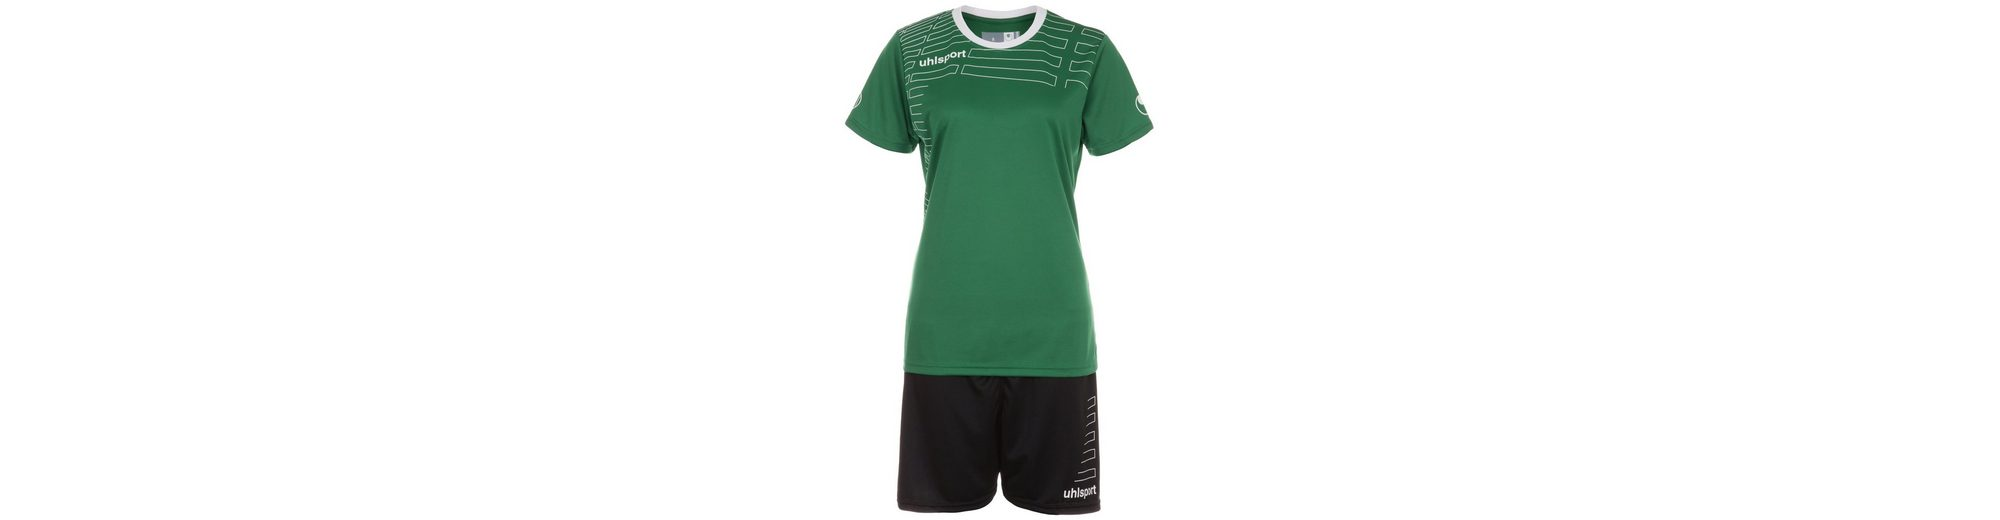 Kit Team Match Match Damen Damen Shortsleeve UHLSPORT Team Team Kit Shortsleeve UHLSPORT Shortsleeve Kit UHLSPORT Match FqqUndA